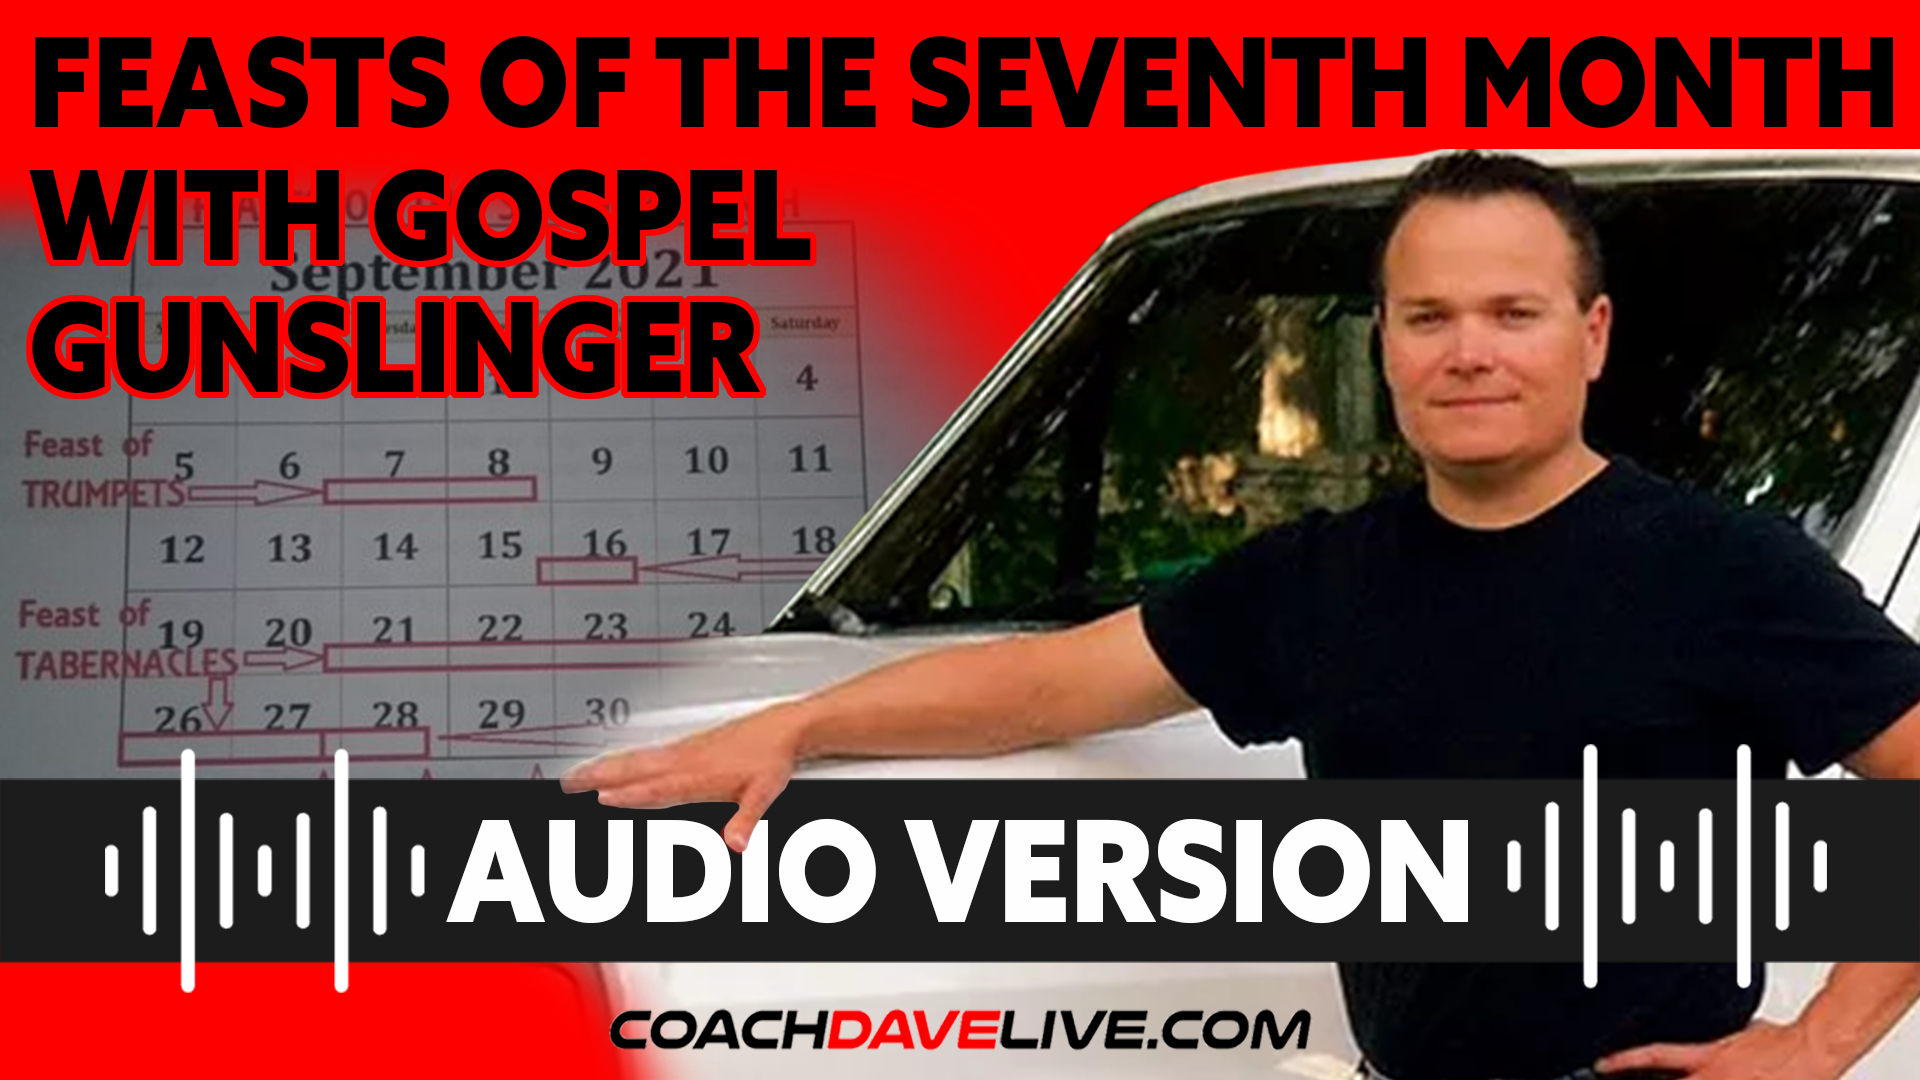 Coach Dave LIVE | 9-9-2021 | FEASTS OF THE SEVENTH MONTH WITH GOSPEL GUNSLINGER - AUDIO ONLY